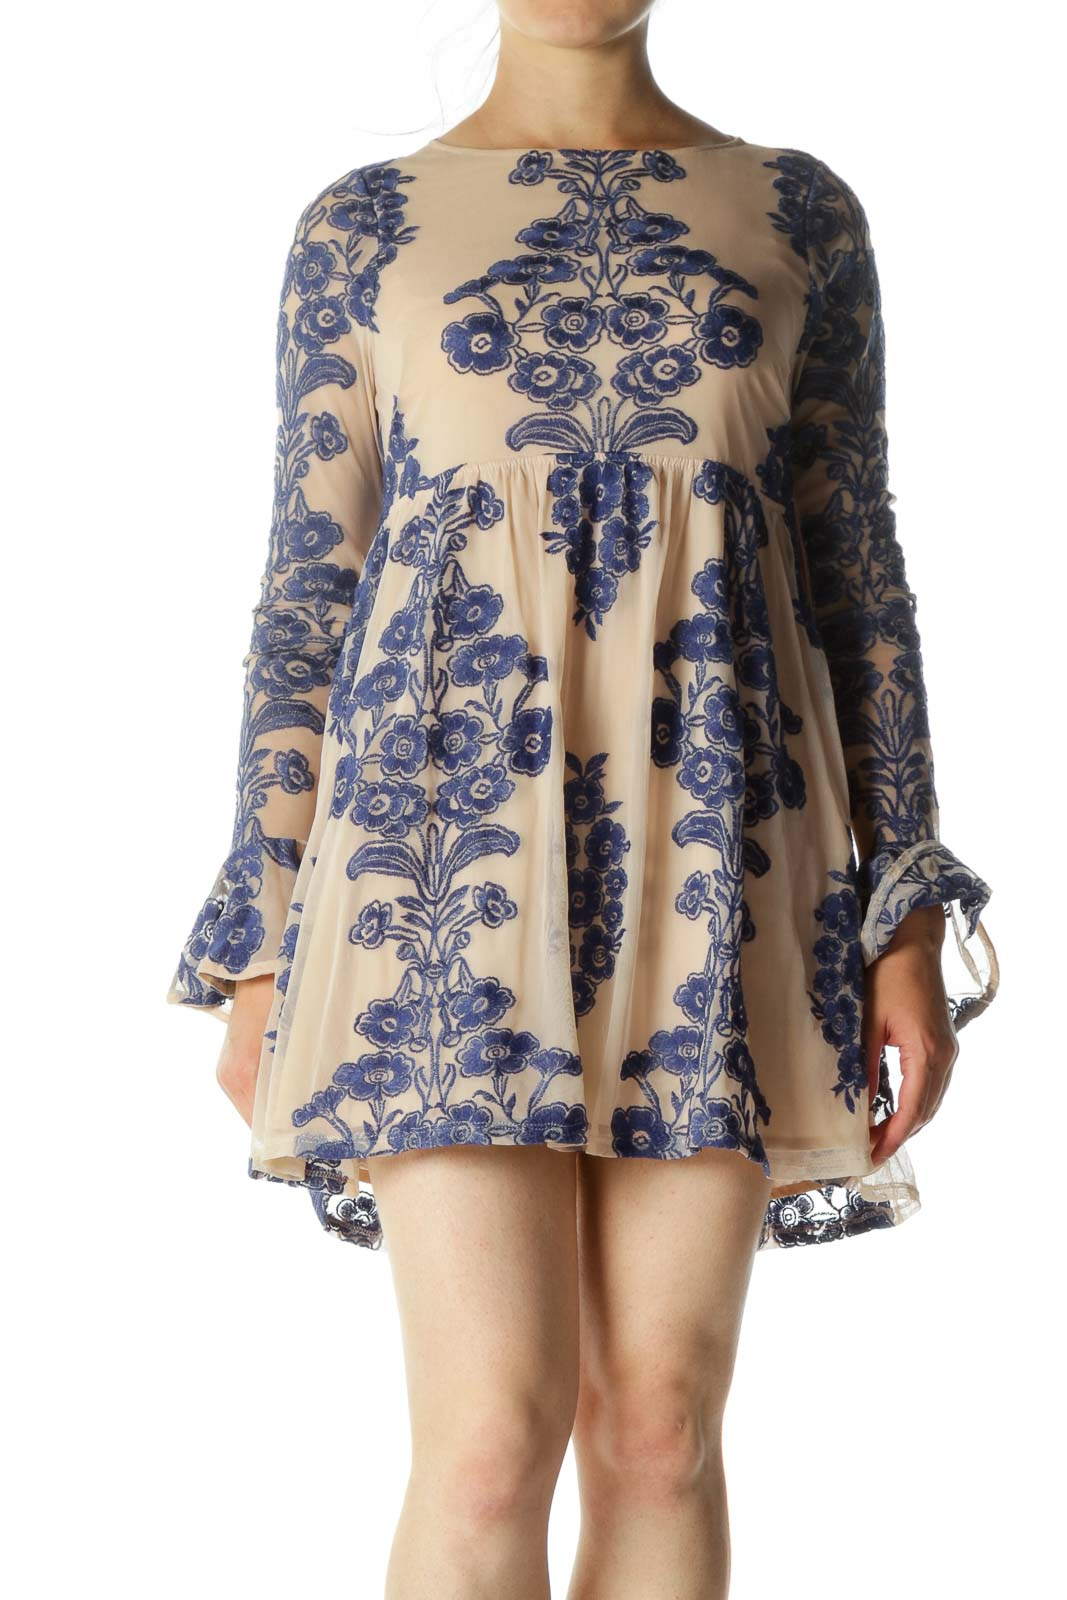 Blue Beige Round Neck Floral Embroidery Lace Body Cocktail Dress Front